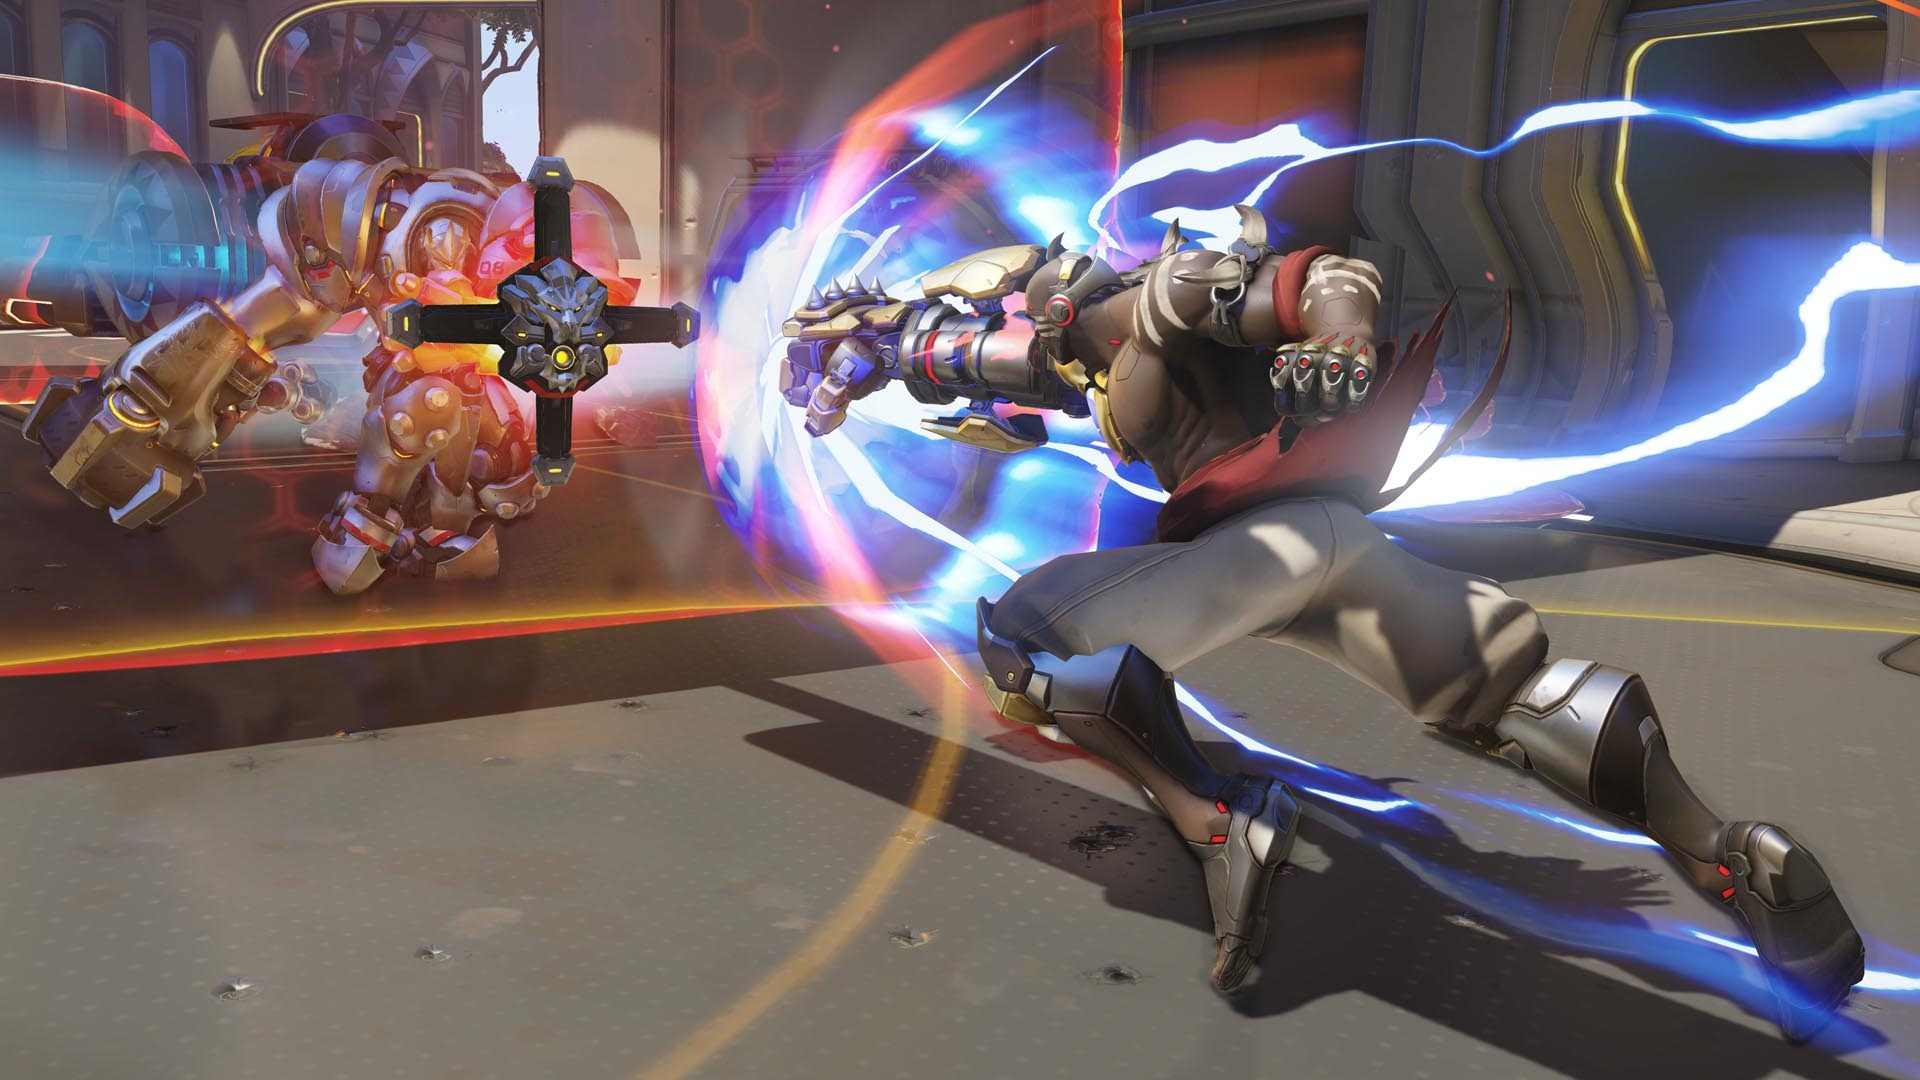 Currently, there are no announced skins for Doomfist in Overwatch.